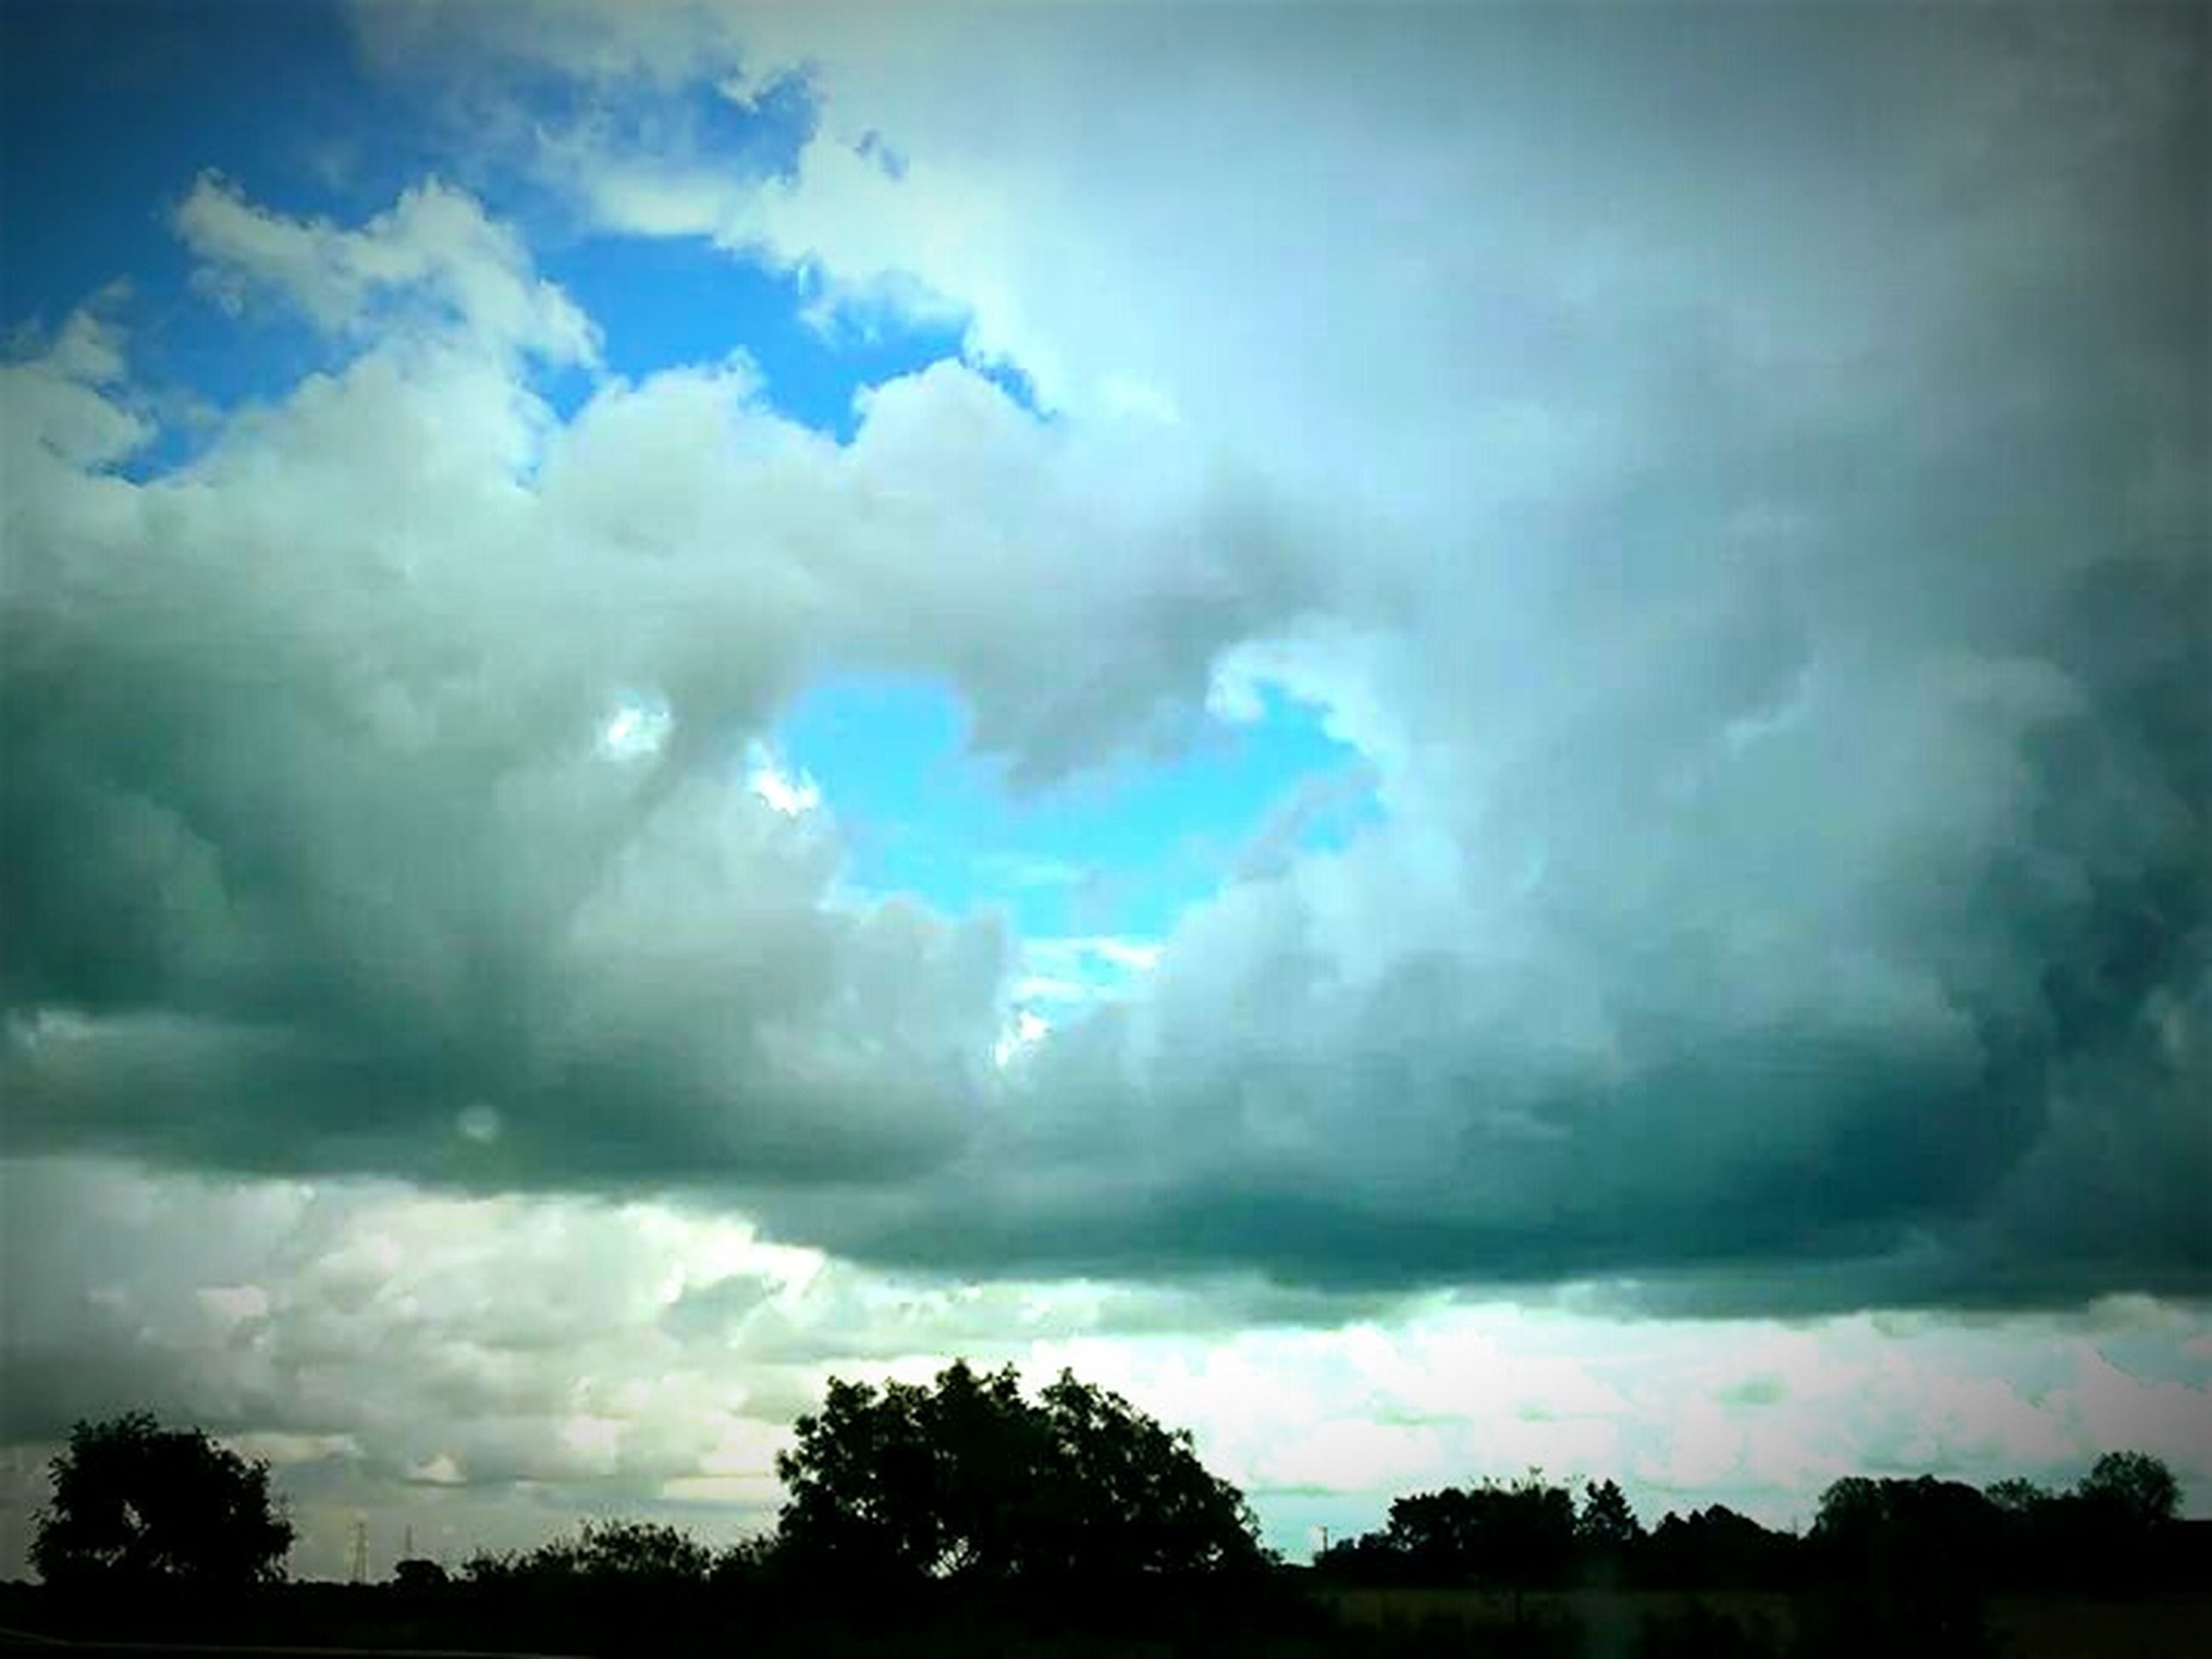 sky, cloud - sky, tree, cloudy, tranquility, beauty in nature, scenics, tranquil scene, silhouette, weather, nature, low angle view, overcast, storm cloud, cloud, cloudscape, dramatic sky, idyllic, dusk, atmospheric mood